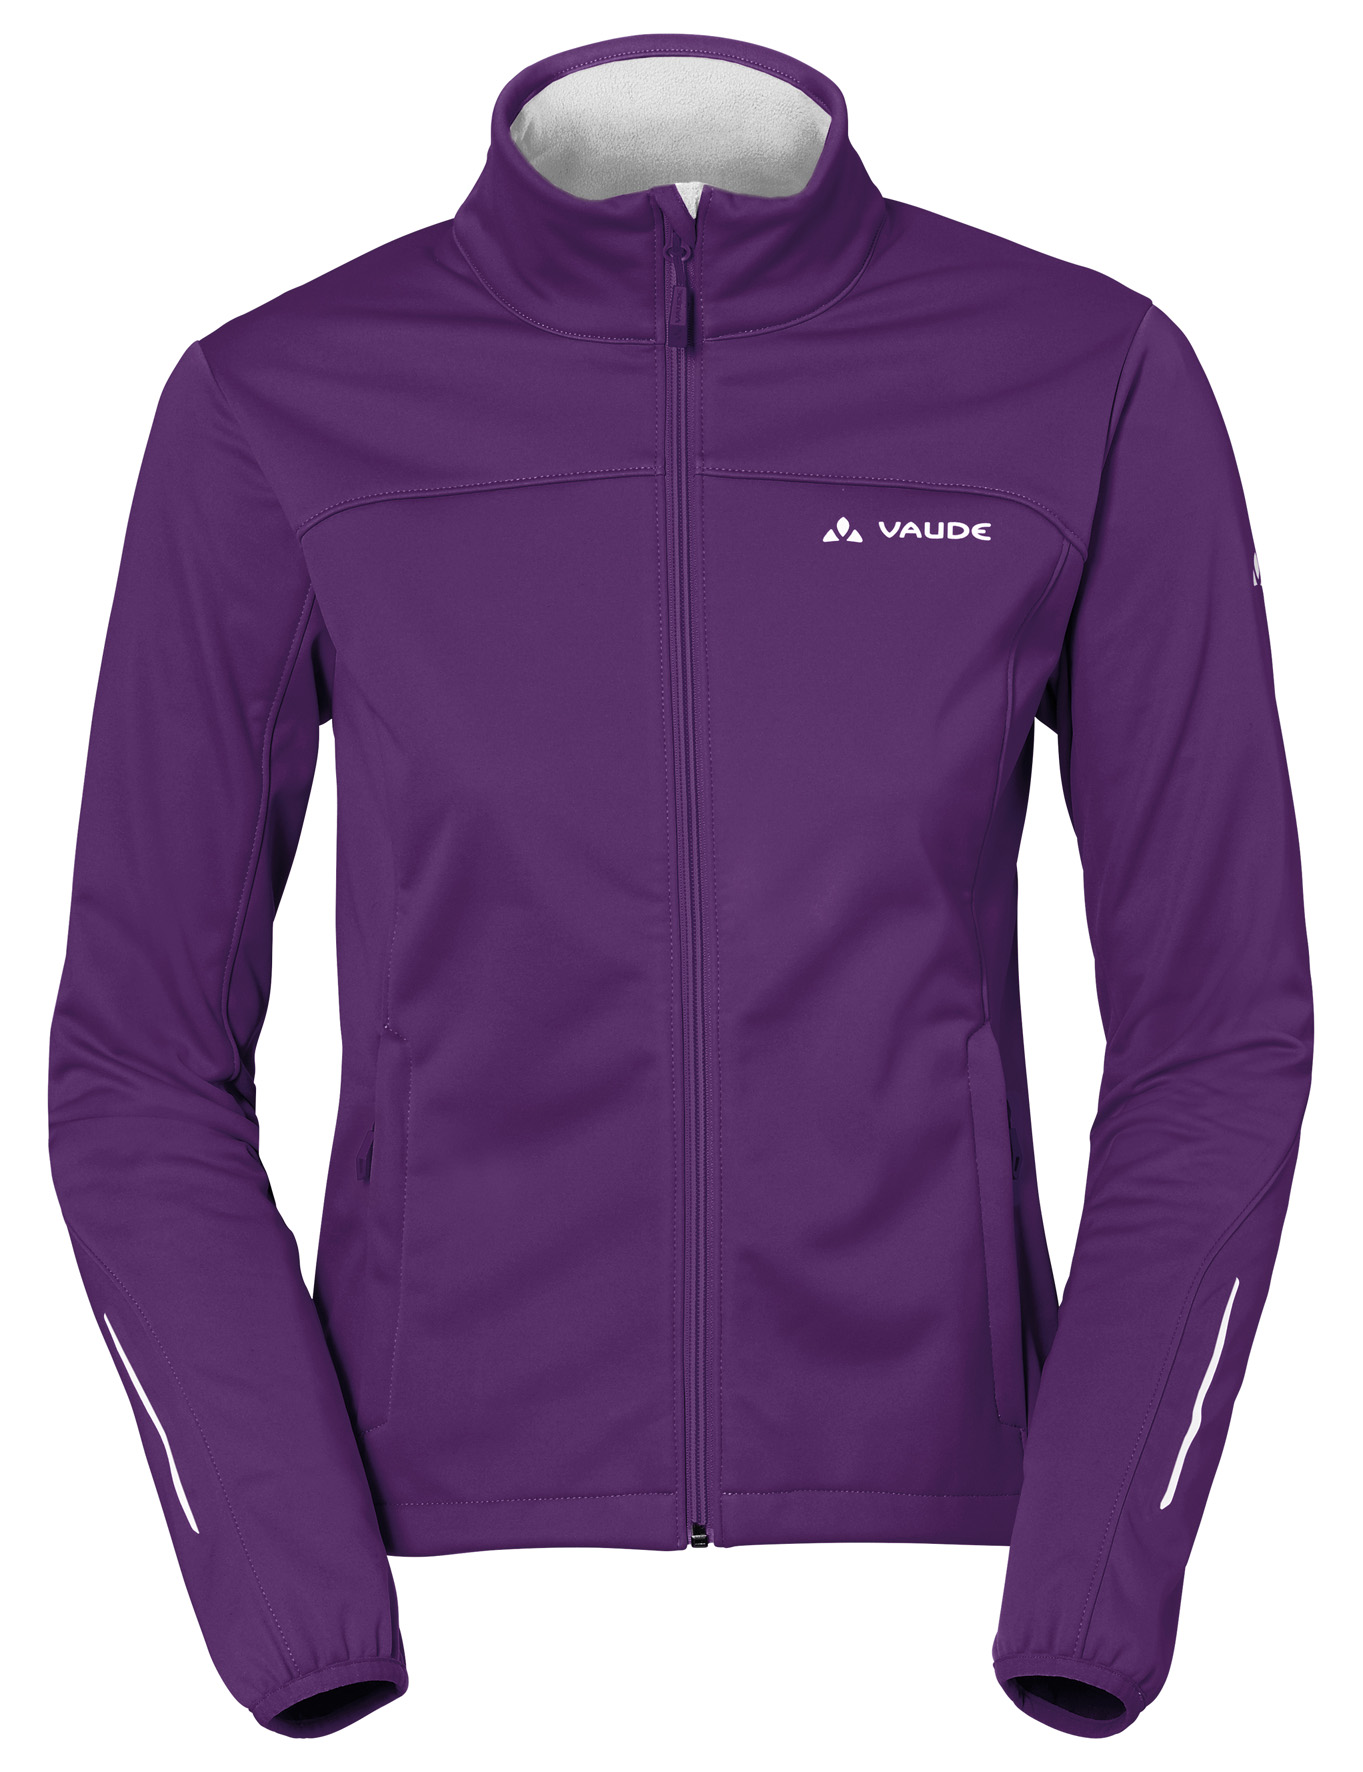 VAUDE Women´s Wintry Jacket III elderberry Größe 36 - schneider-sports